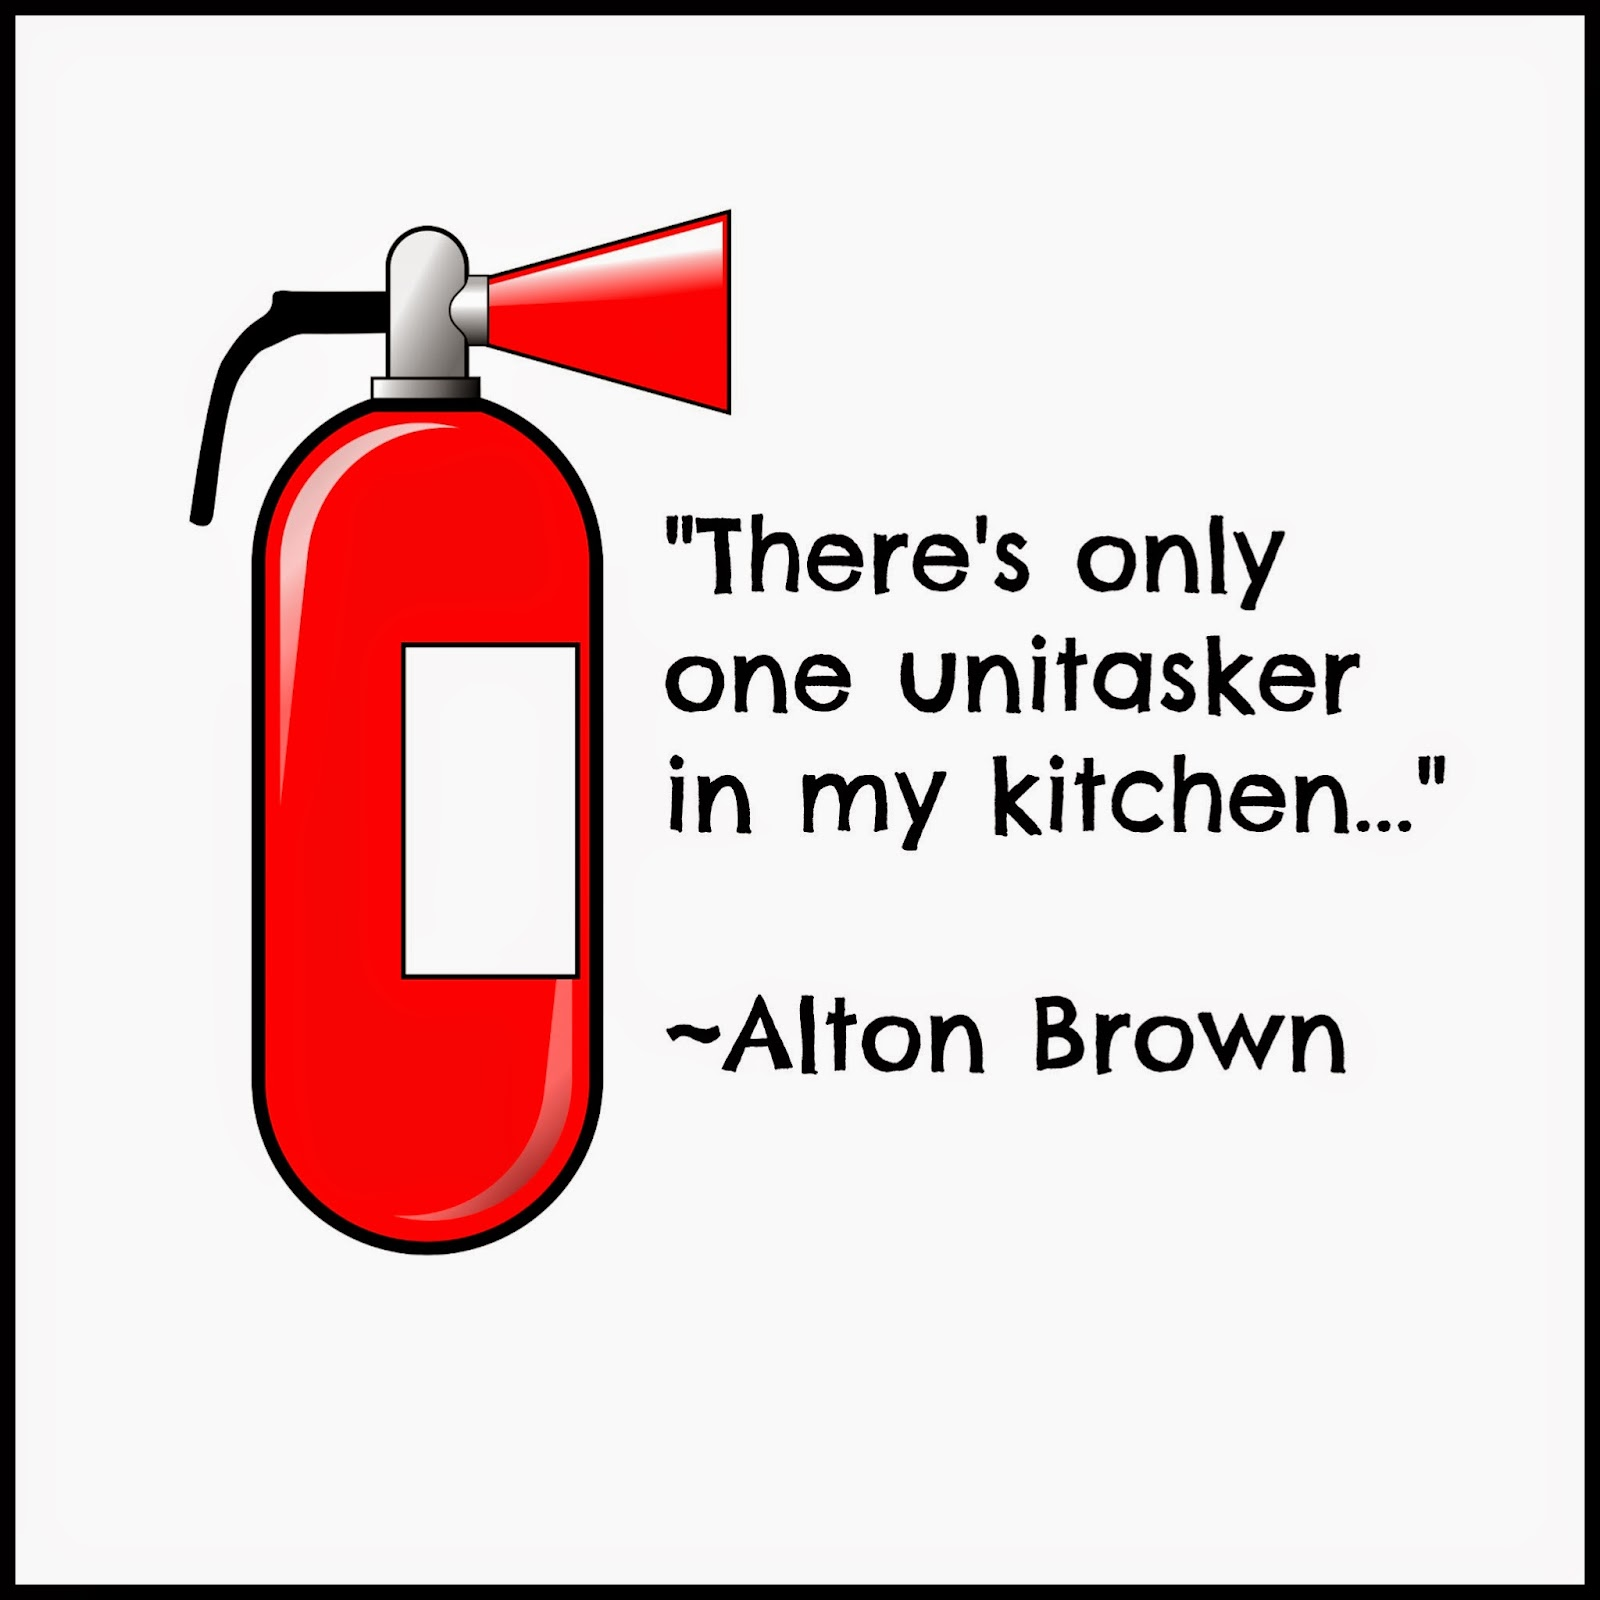 Only one unitasker allowed. -Alton Brown